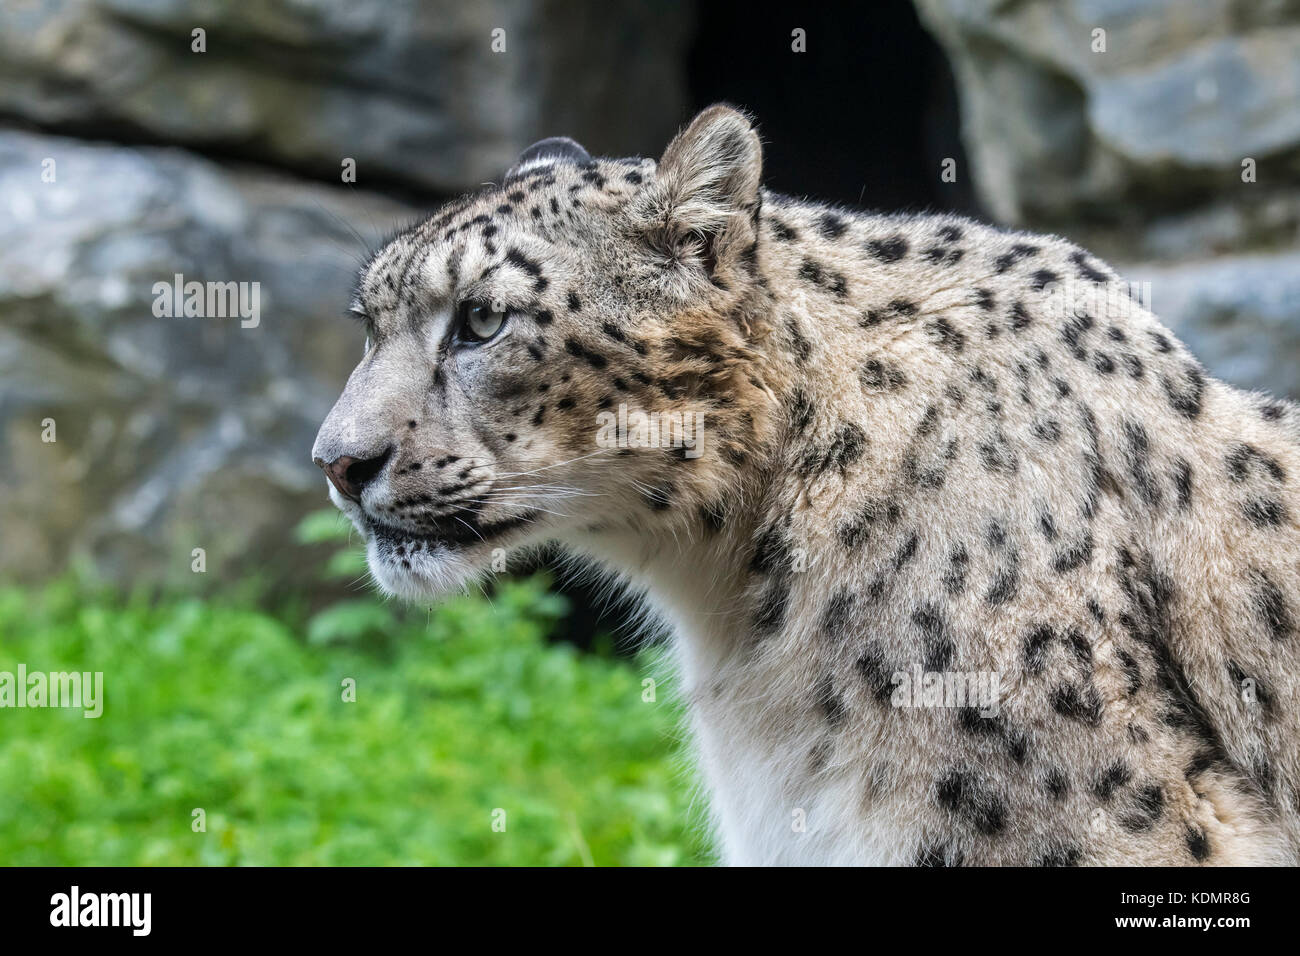 Snow leopard / ounce (Panthera uncia / Uncia uncia) native to the mountain ranges of Central and South Asia - Stock Image